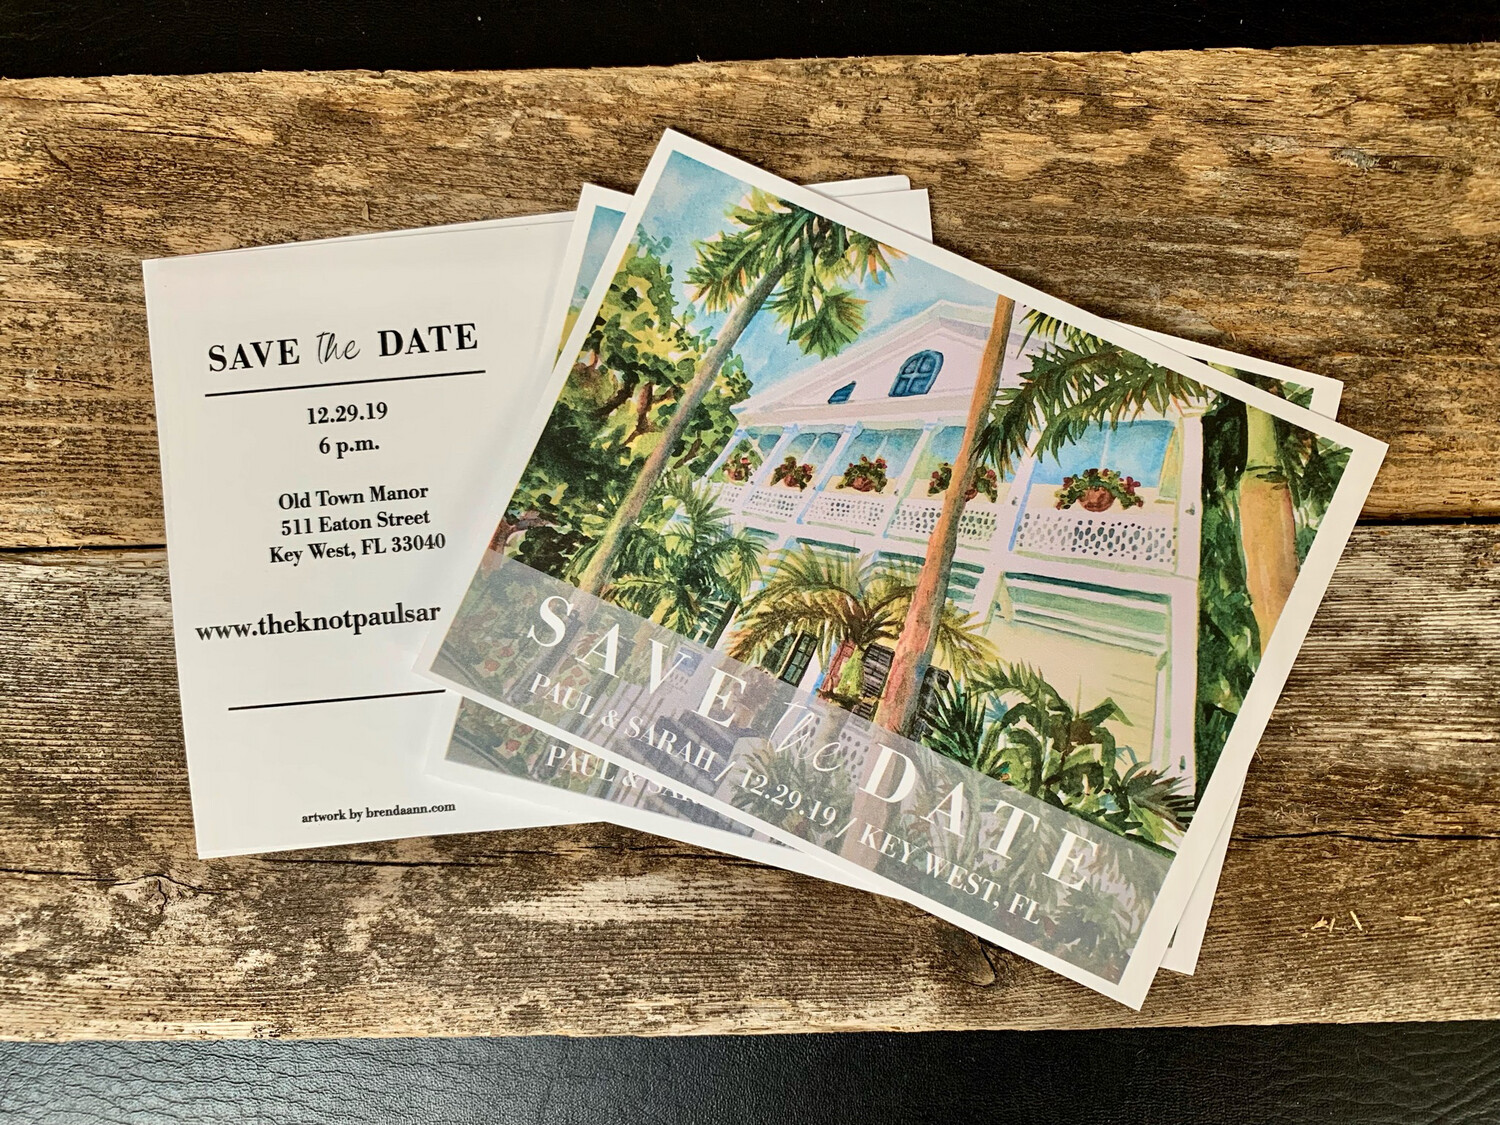 Wedding Save the Date Cards - Old Town Manor in Key West FL - Watercolor by Brenda Ann